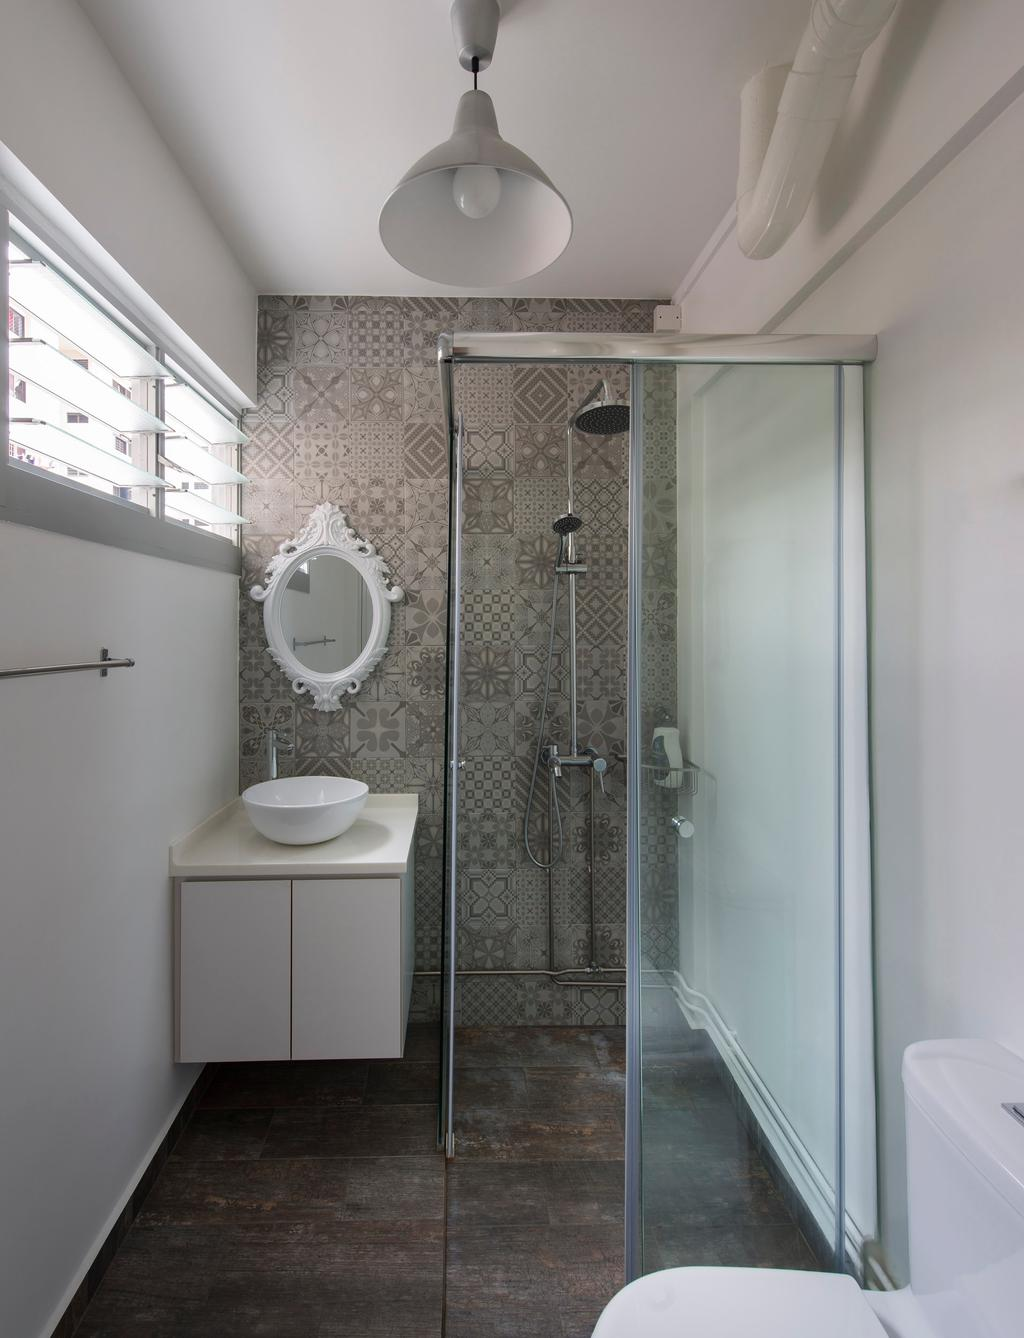 Scandinavian, HDB, Bathroom, Bukit Batok, Interior Designer, M3 Studio, Tile, Tiles, Floral, Gray, Gilded Mirror, Vessel Sink, Bathroom Counter, Glass Cubicle, Rain Shower, Cement Flooring, White, Hanging Light, Lighting, Window Shutters, Shutters, Indoors, Interior Design, Room